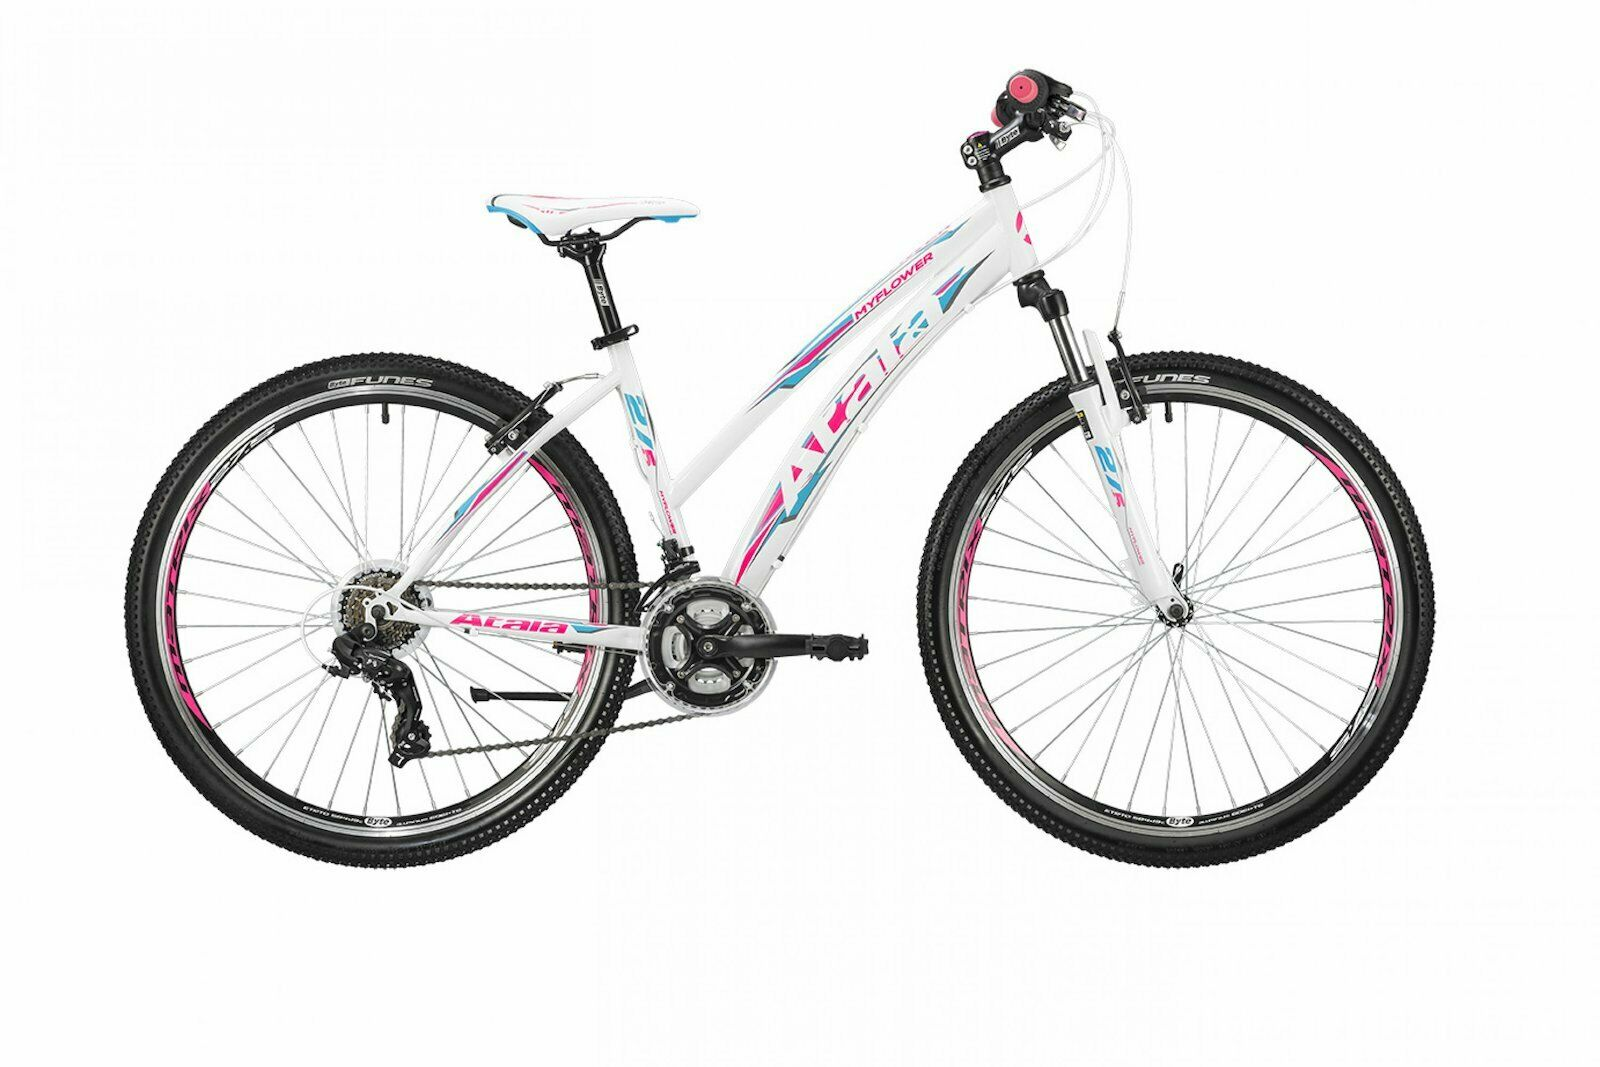 BICI BICICLETTA women ATALA MY FLOWER 27,5  21V 2019 MOUNTAIN BIKE CITY LADY